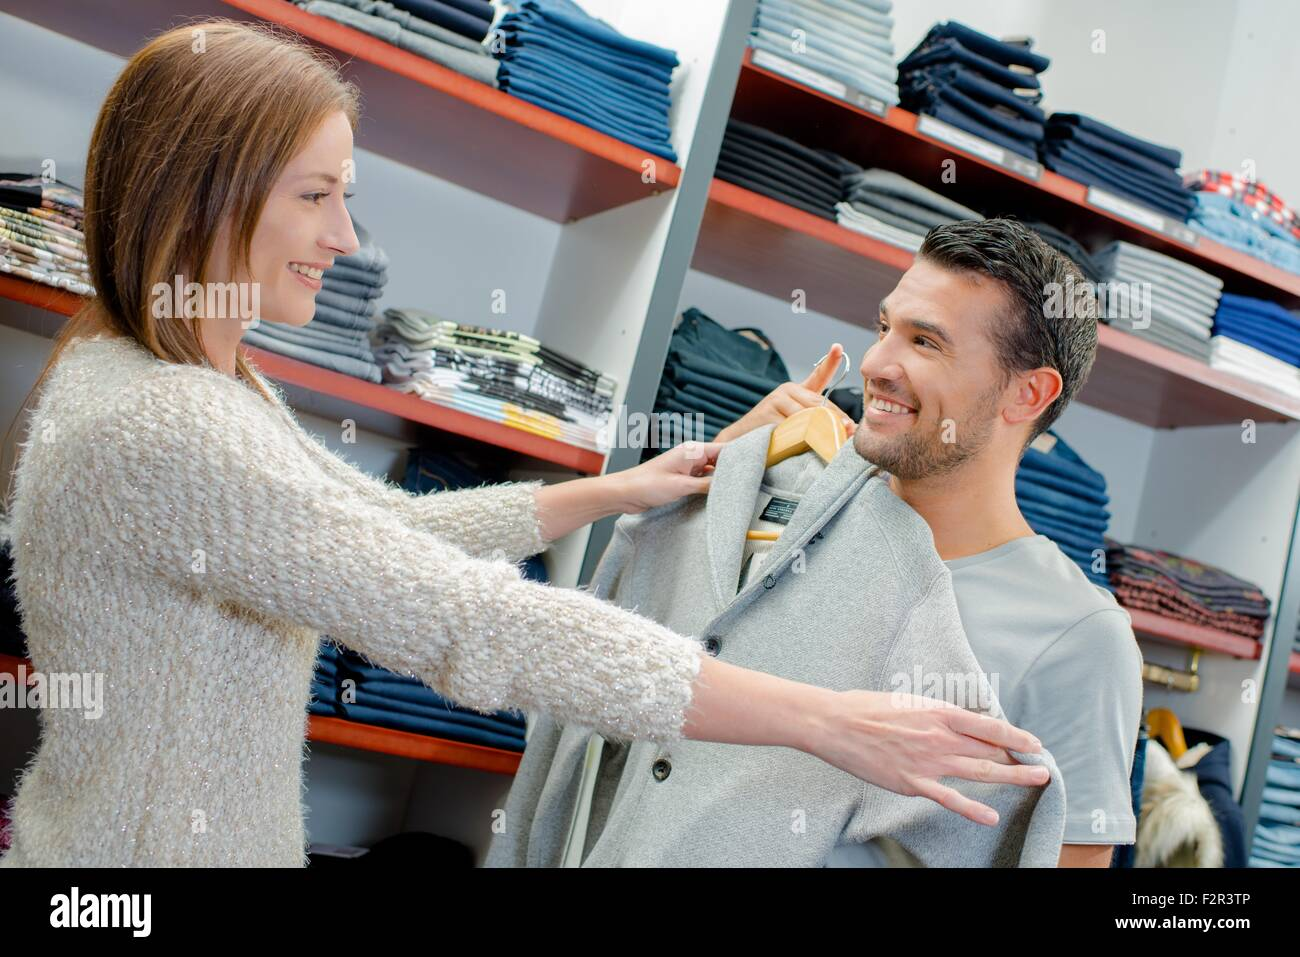 Buying clothes for her boyfriend - Stock Image